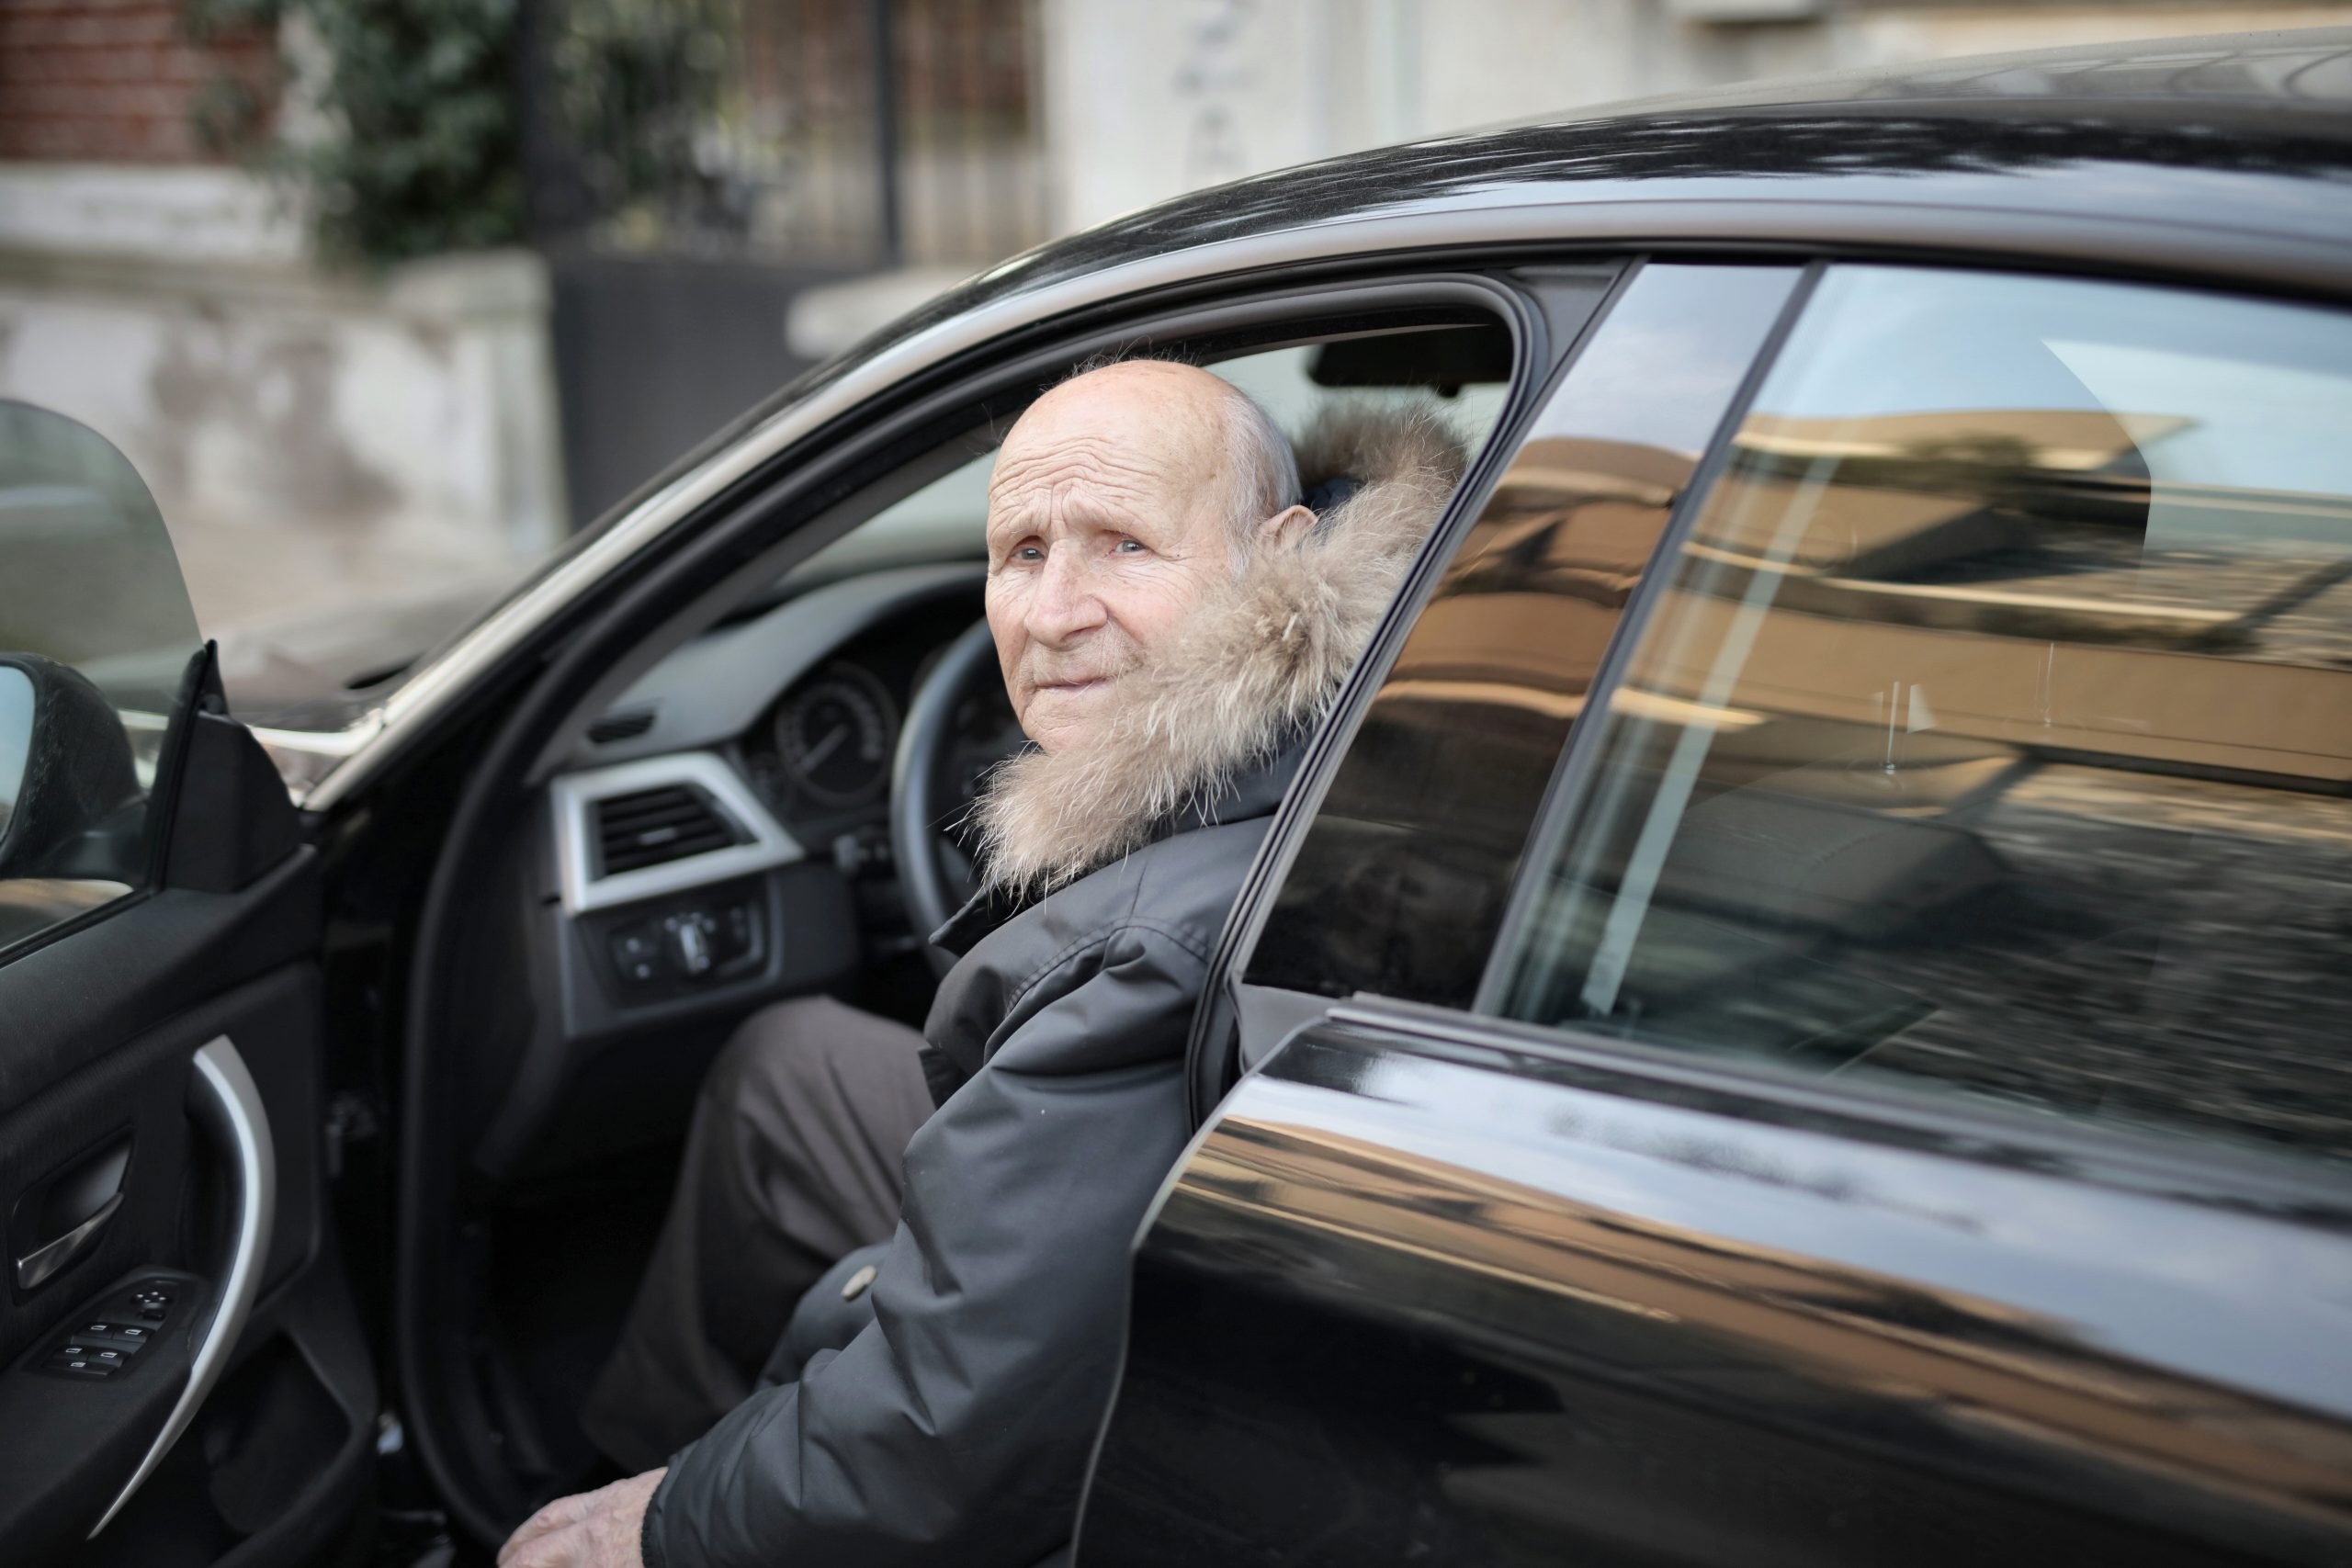 Old man preparing for driving evaluation for seniors